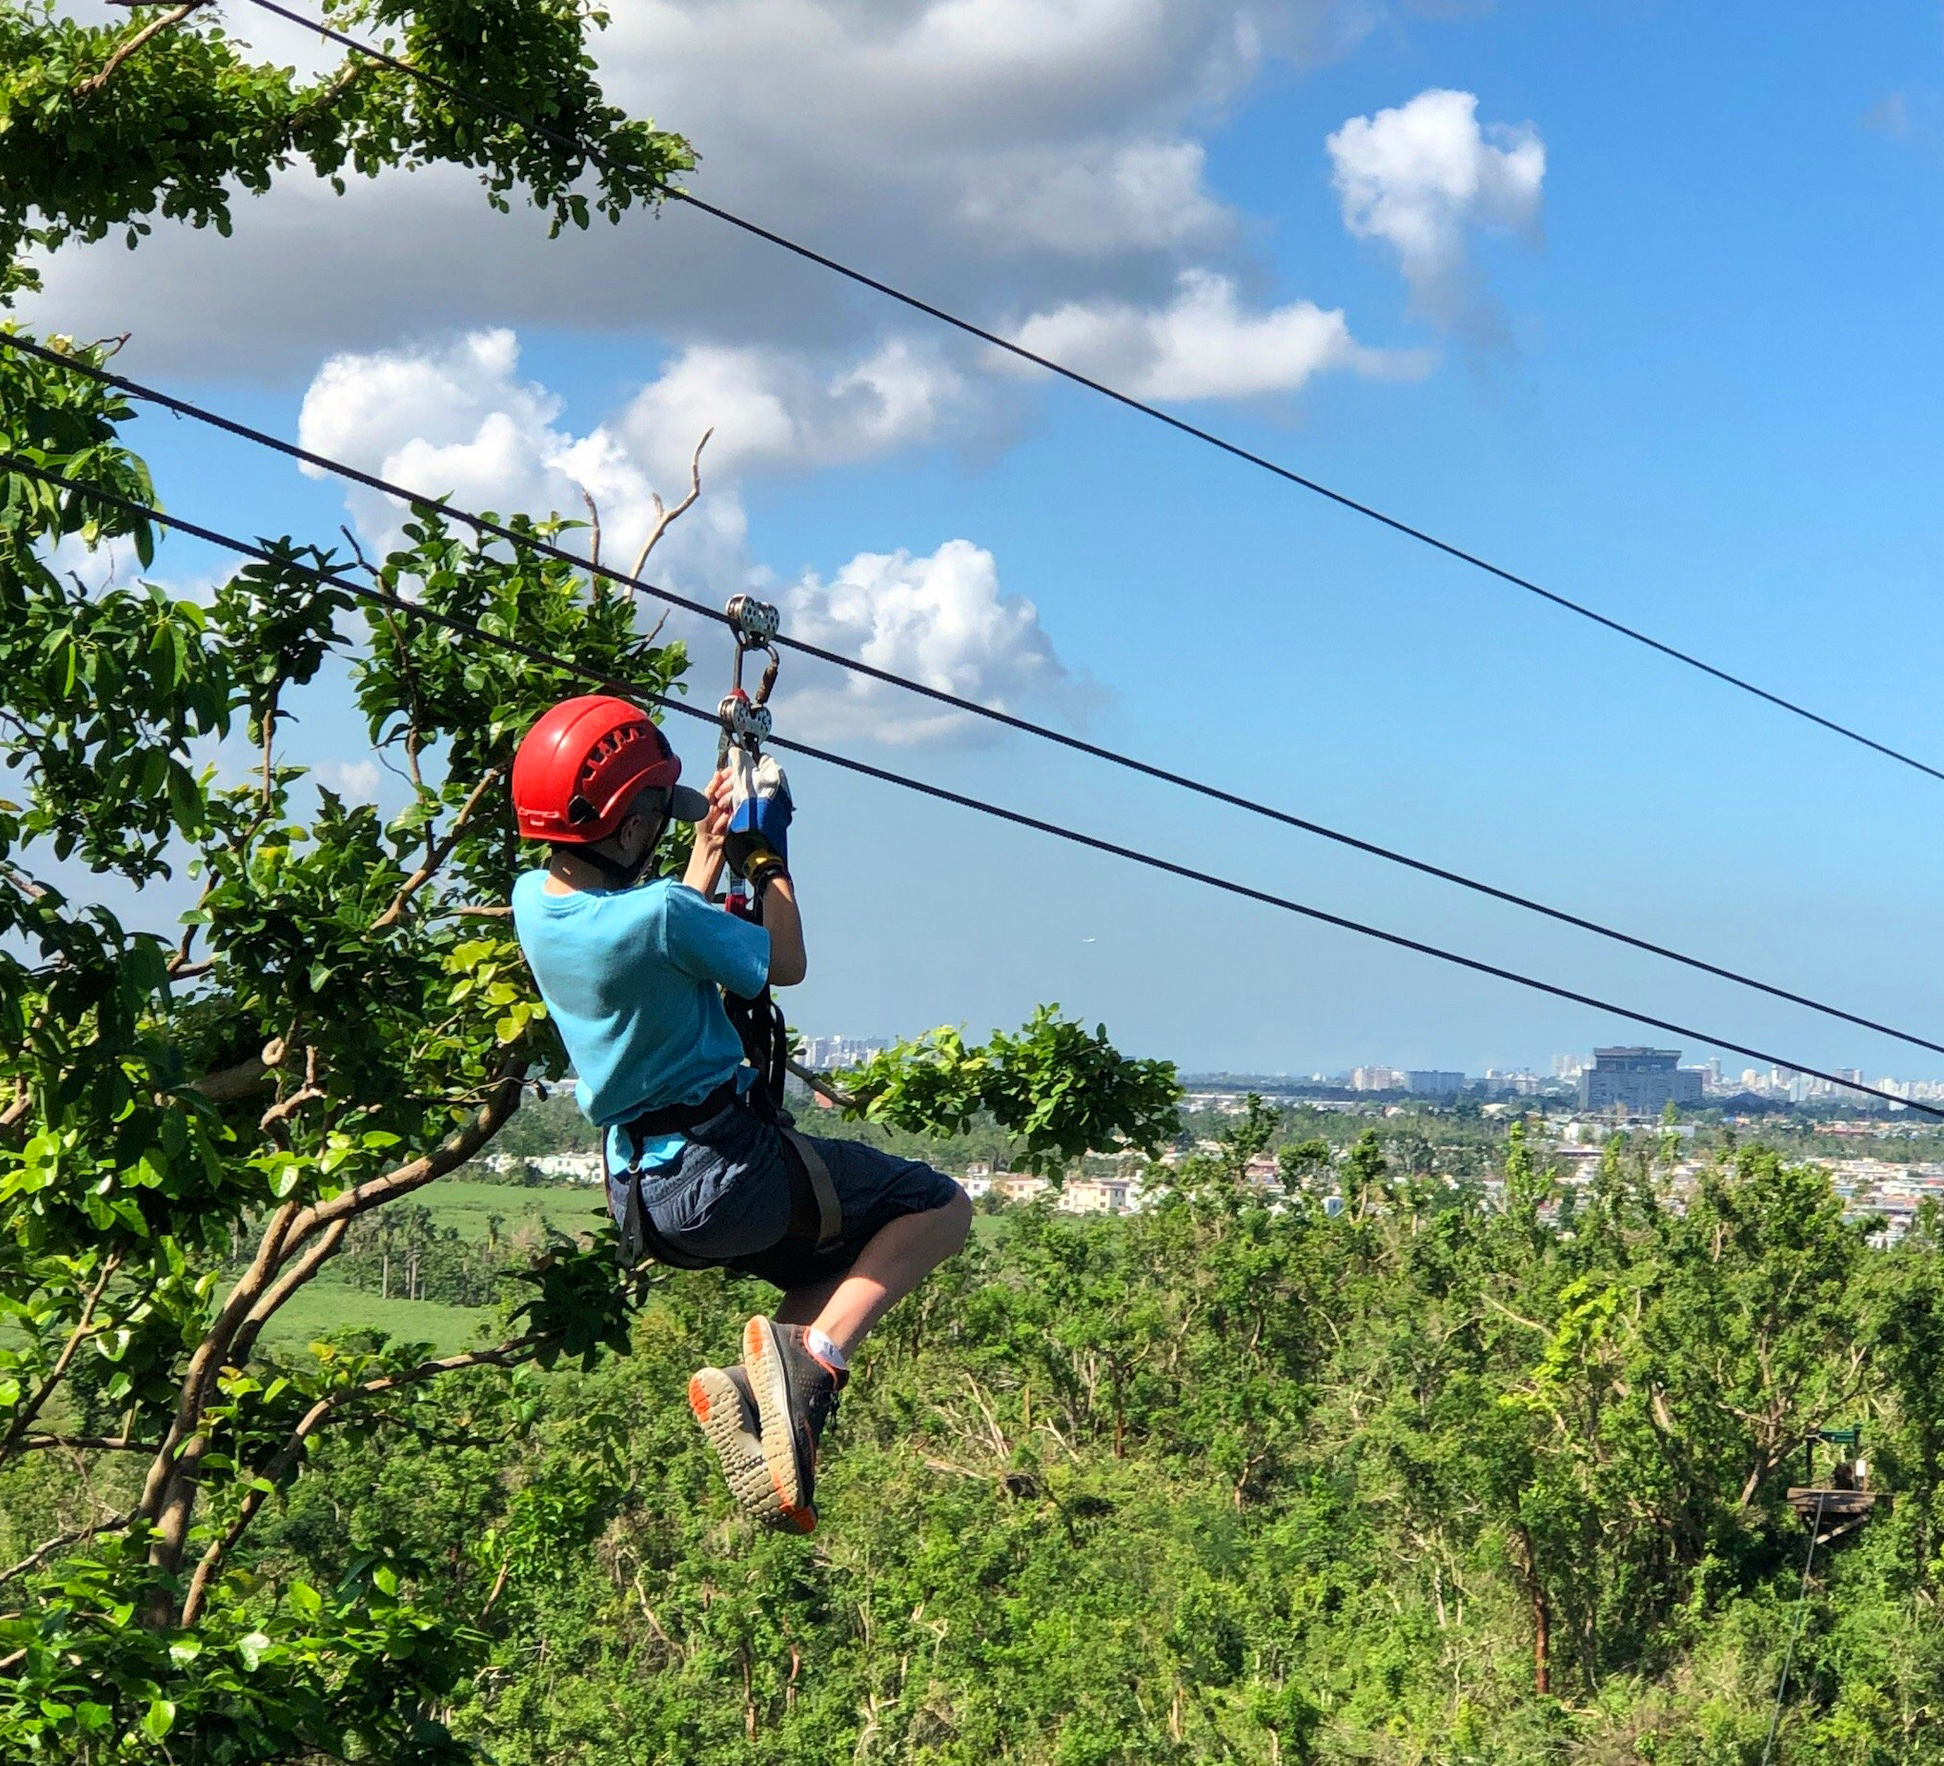 Kids LOVE ziplining!